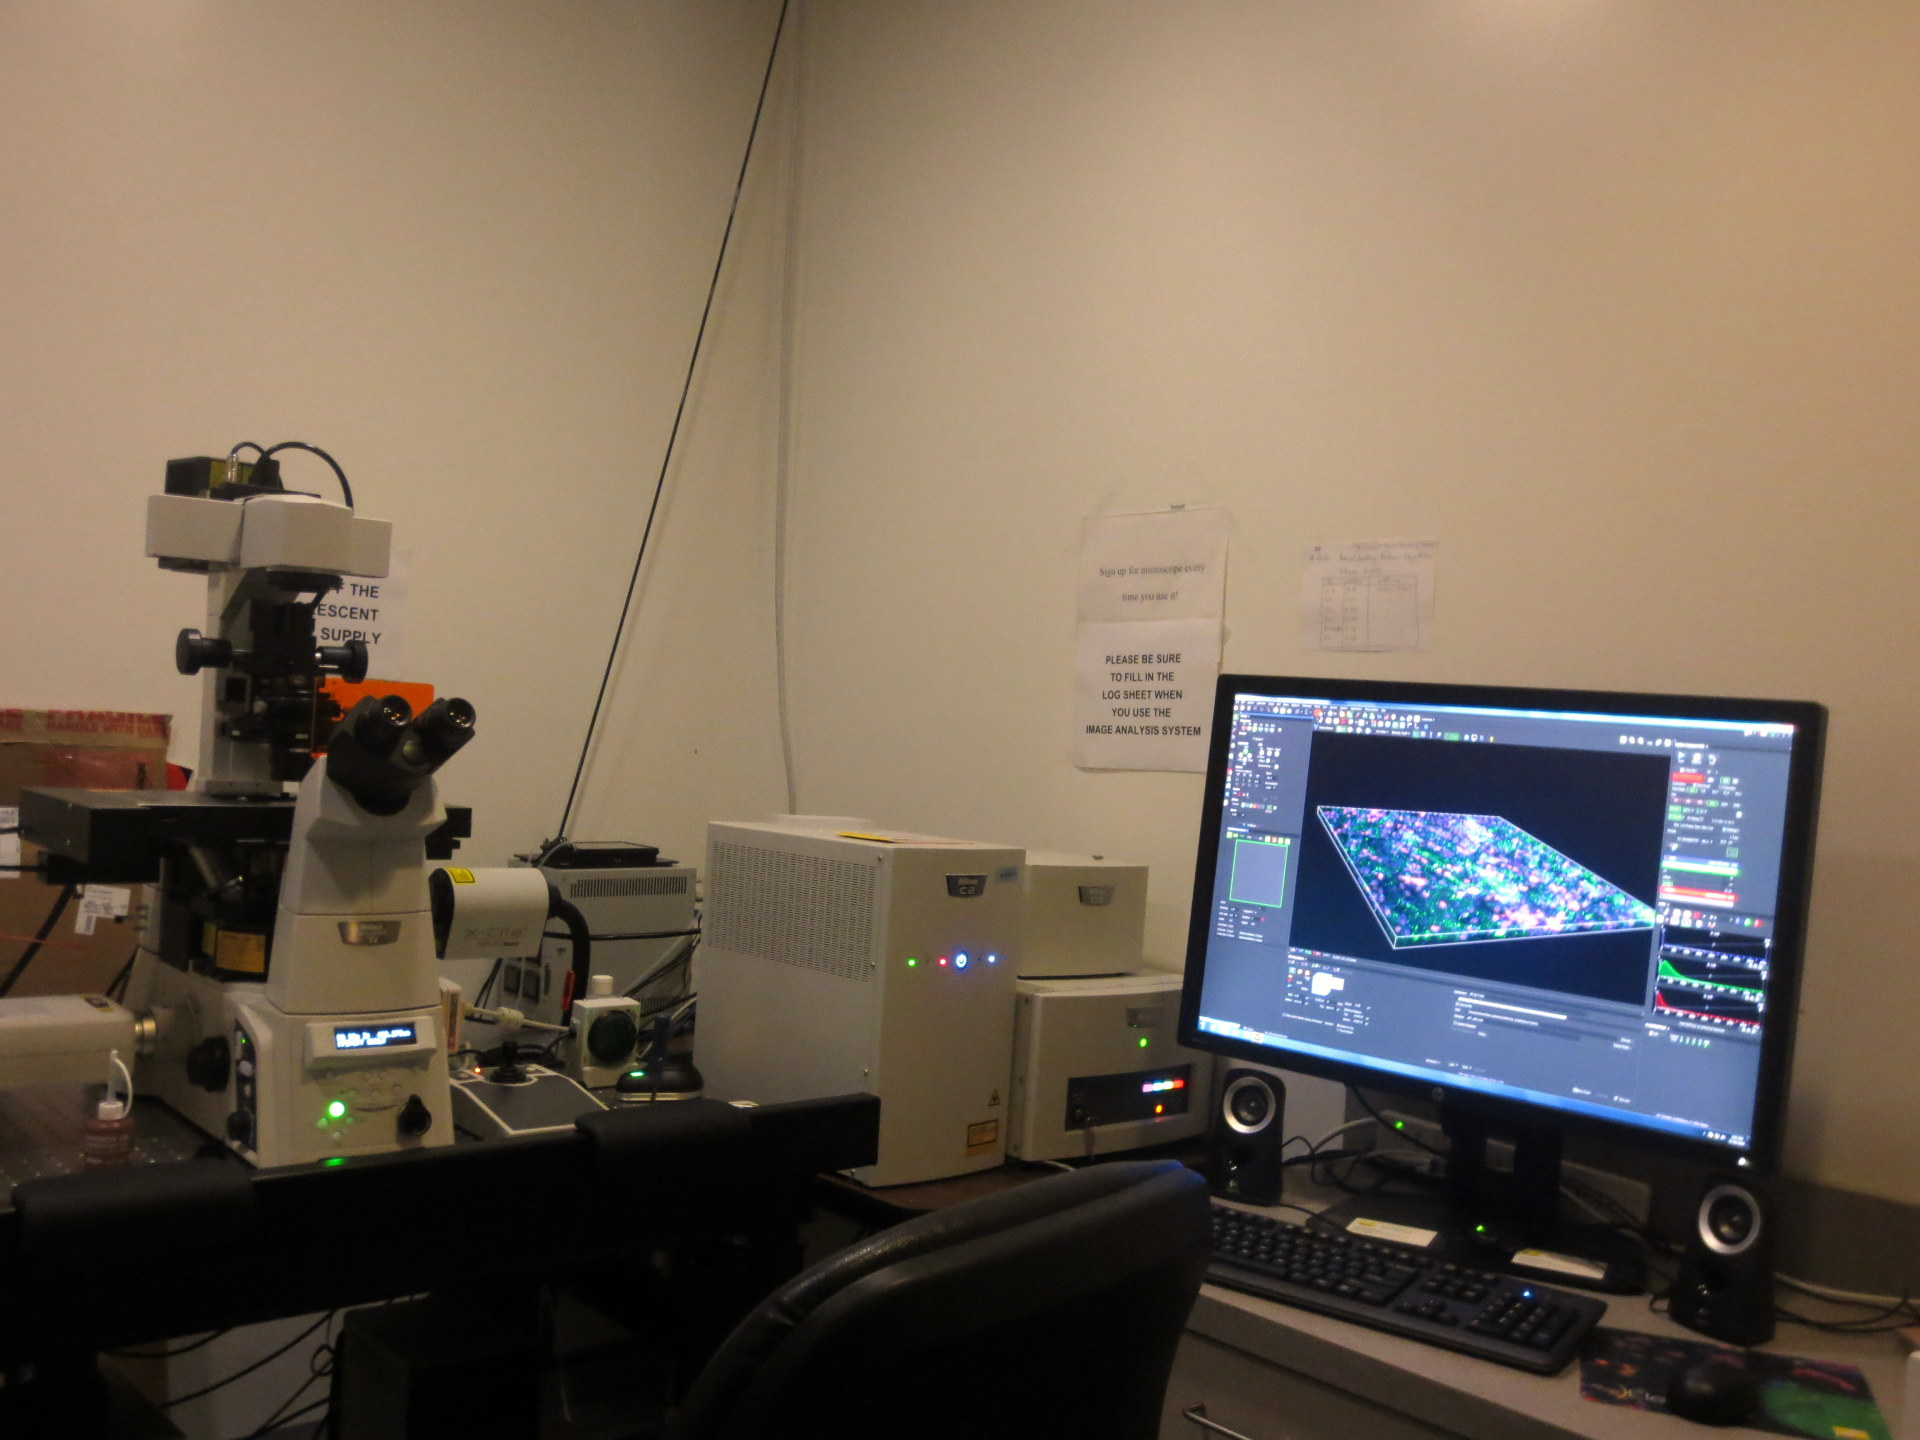 Our latest Nikon Ti series confocal microscopy with motorized stage and live cell imaging